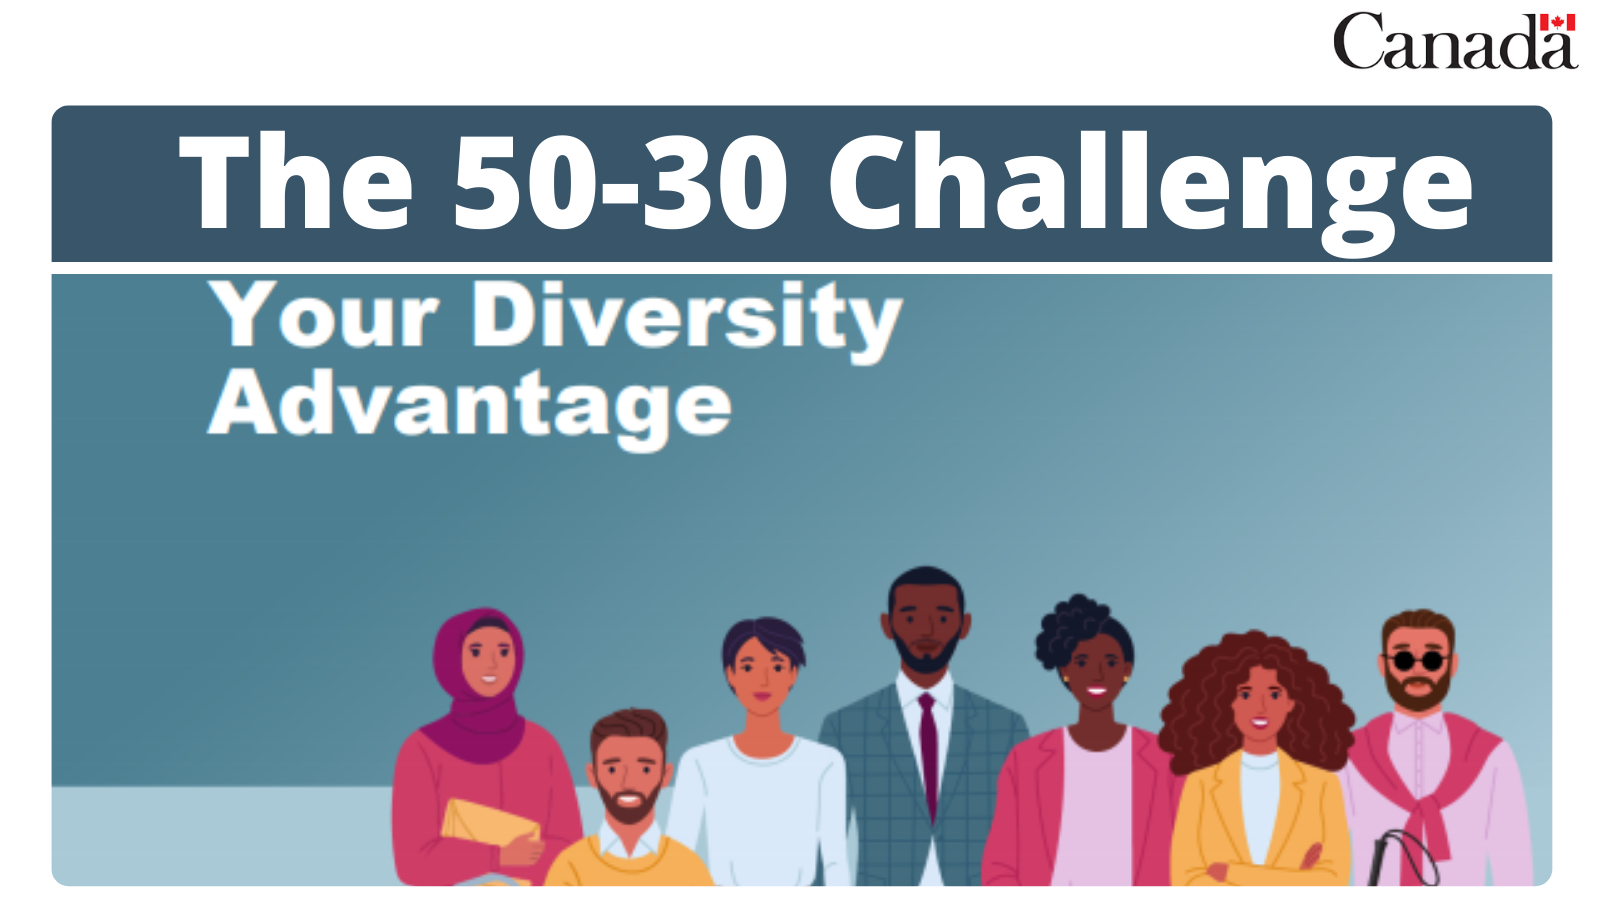 We mark International Women's Day with a challenge to all Canadian organizations to increase the representation of diverse groups within their workplace.